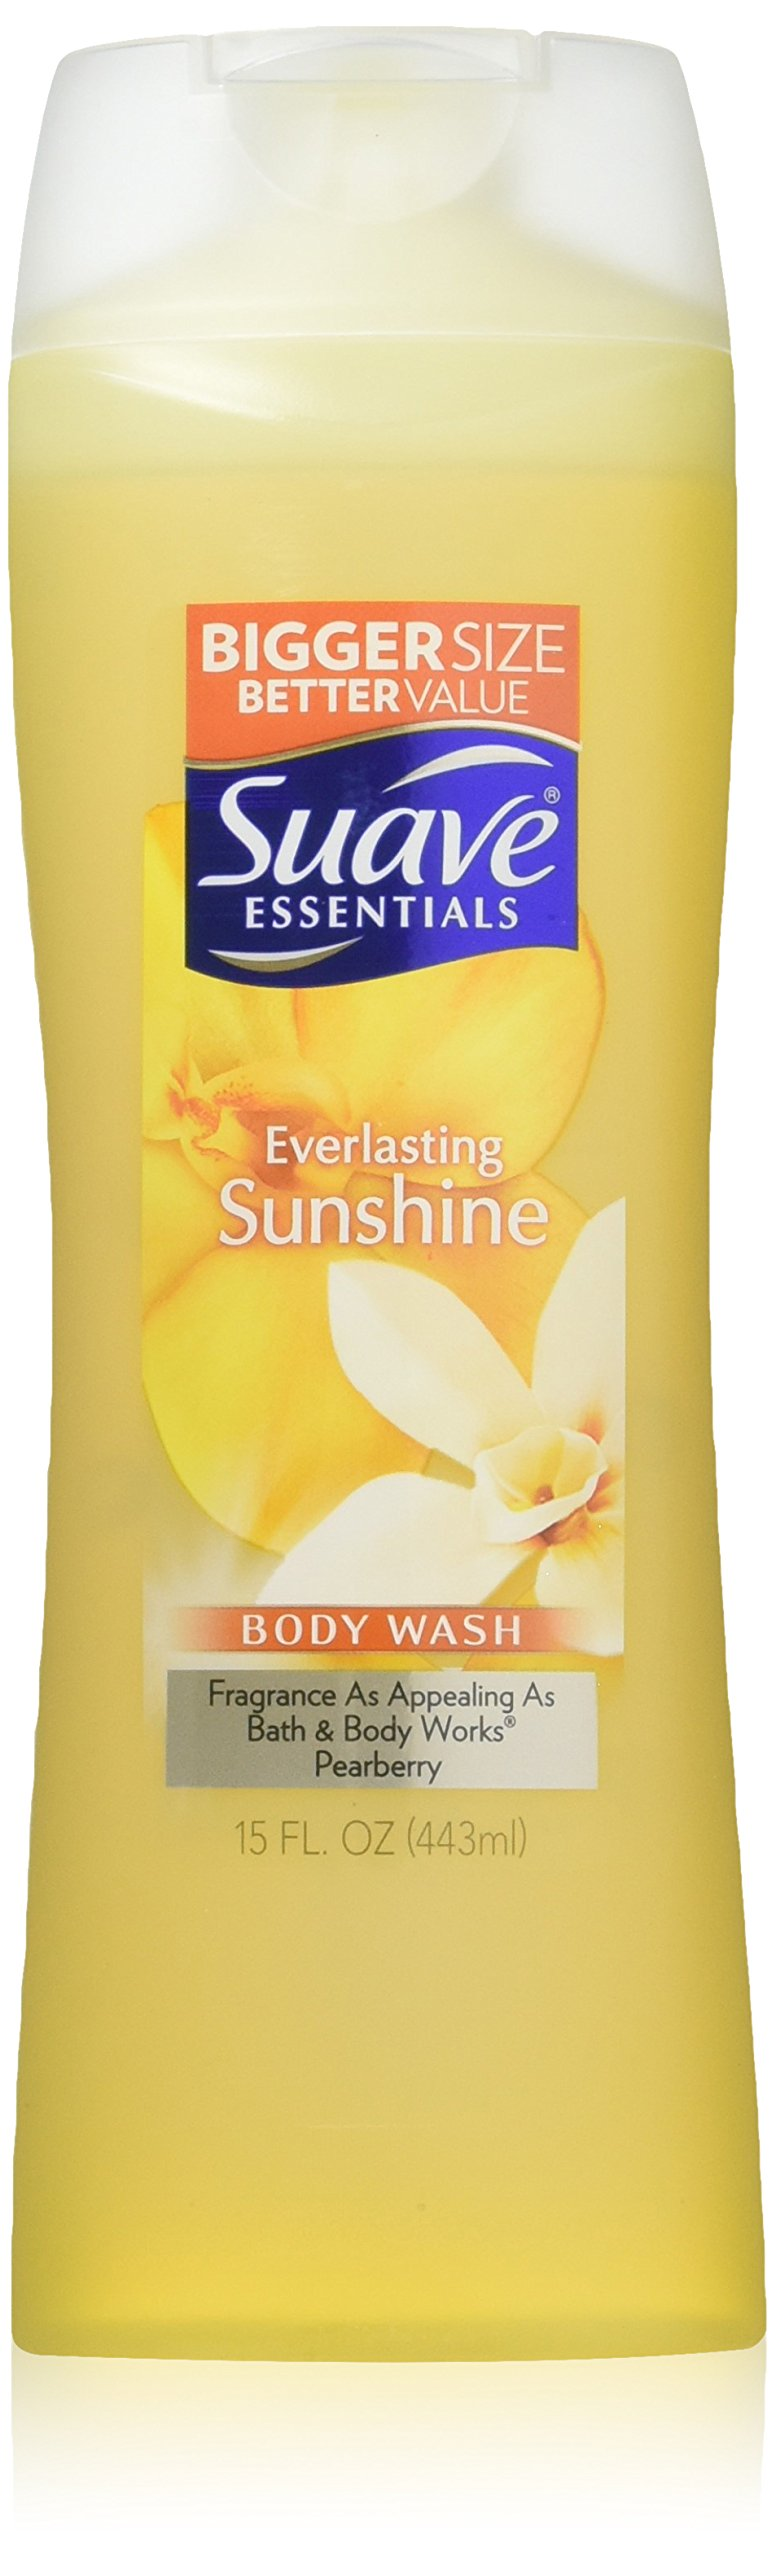 Suave Essentials Body Wash, Everlasting Sunshine 15 Ounce (Pack of 6)